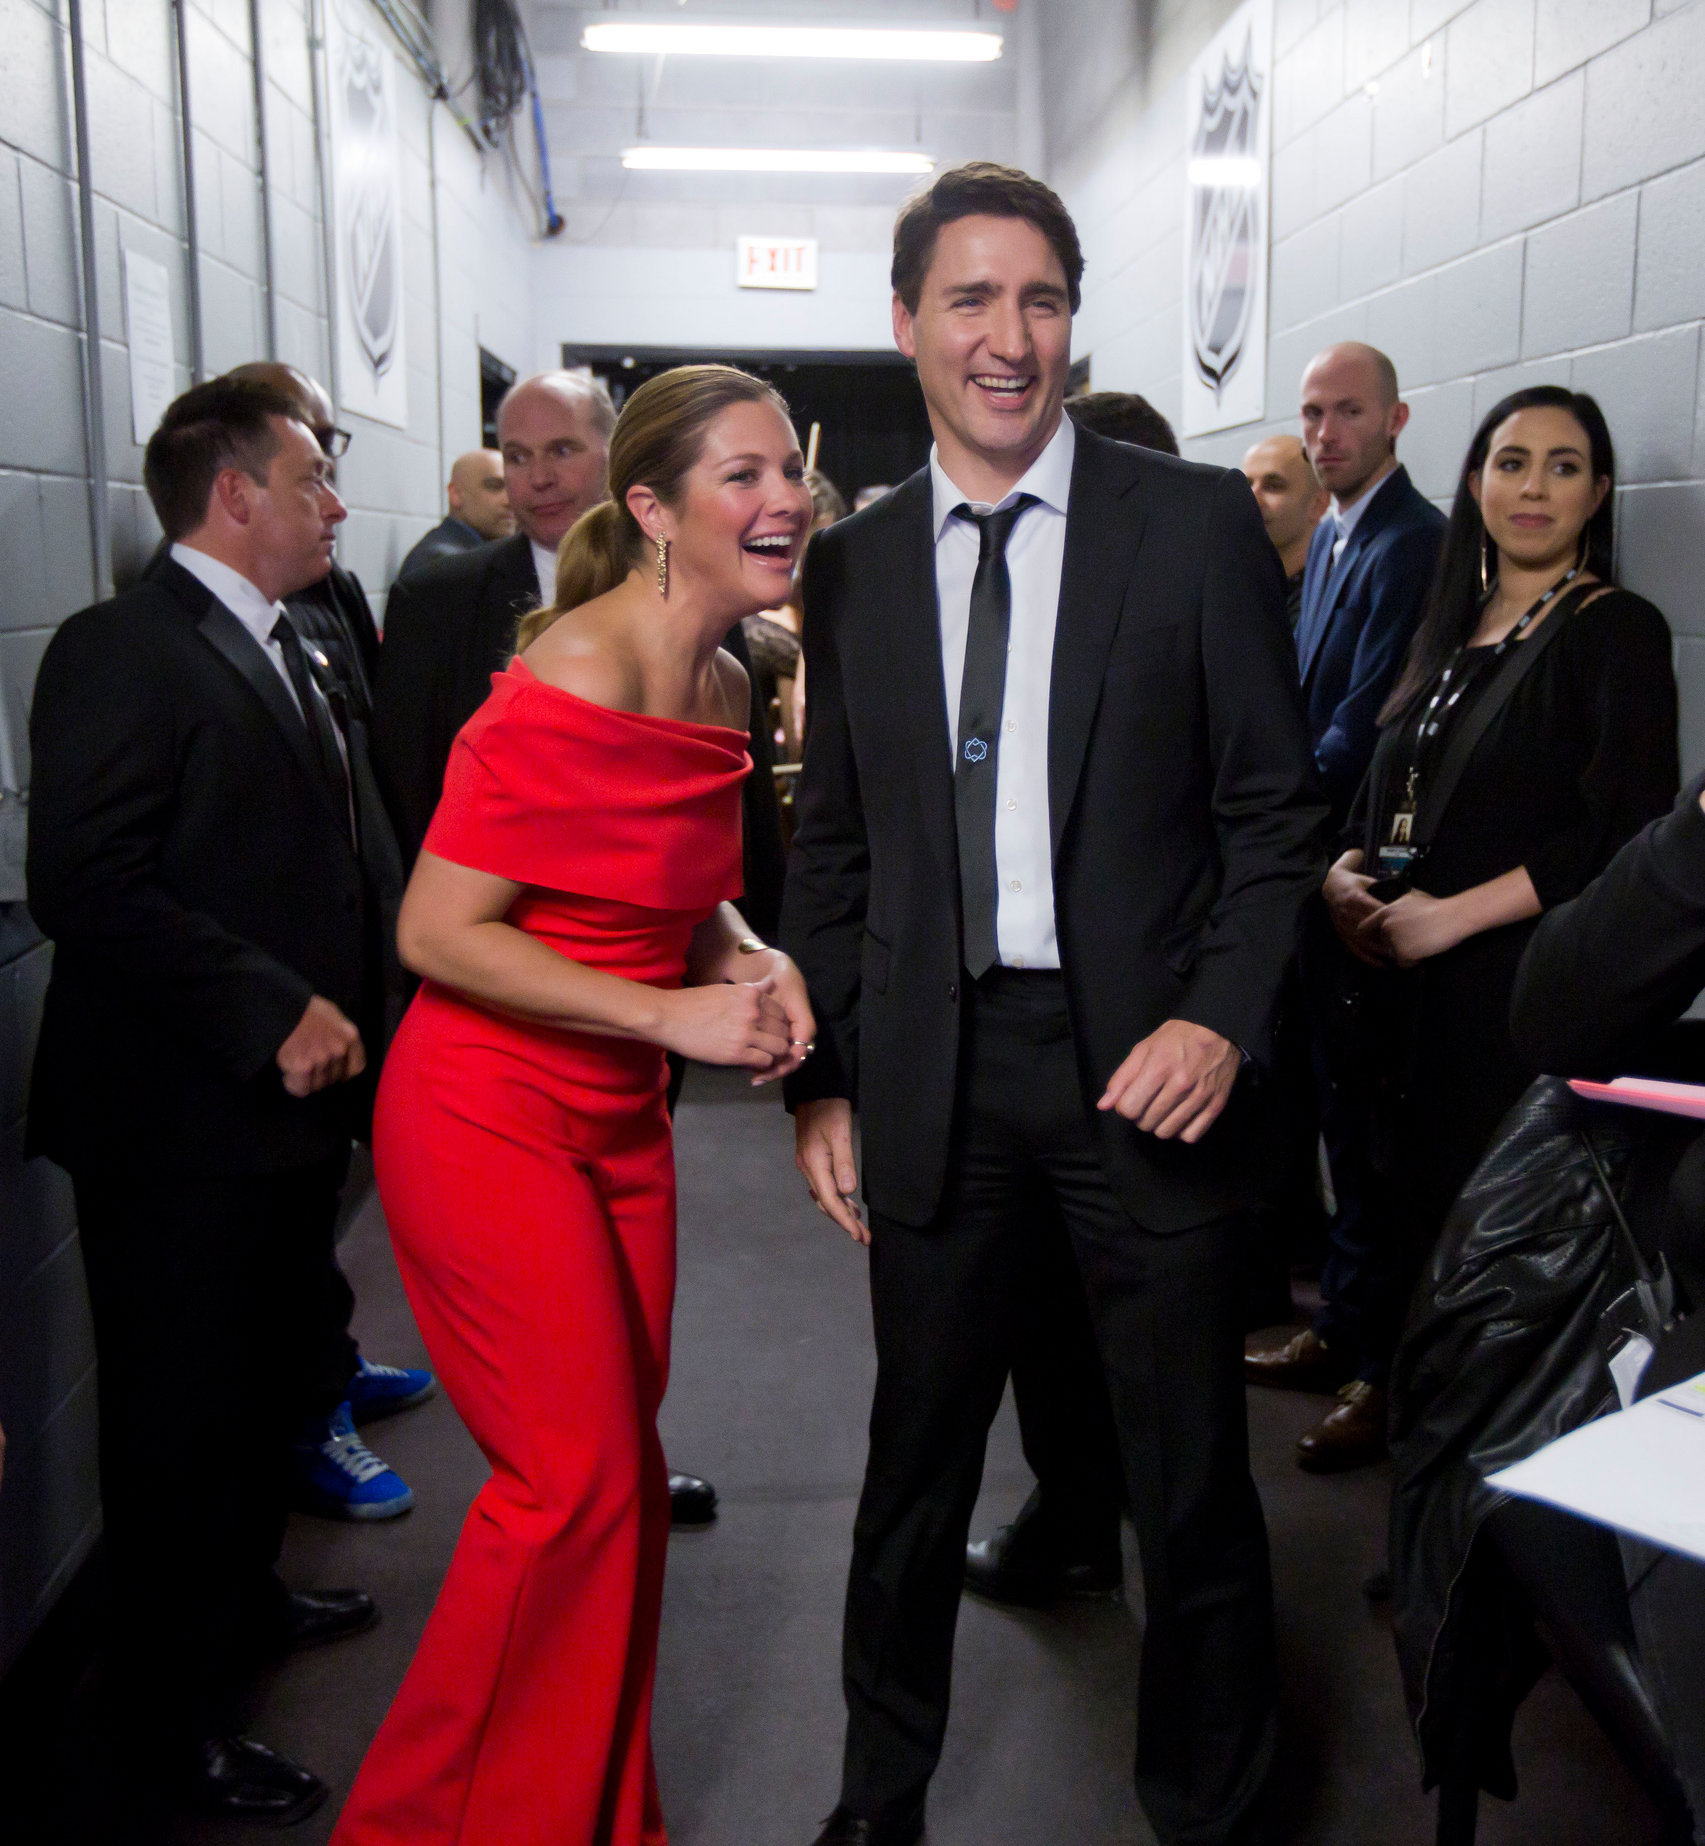 Junos_Behind_The_Scenes_058.JPG